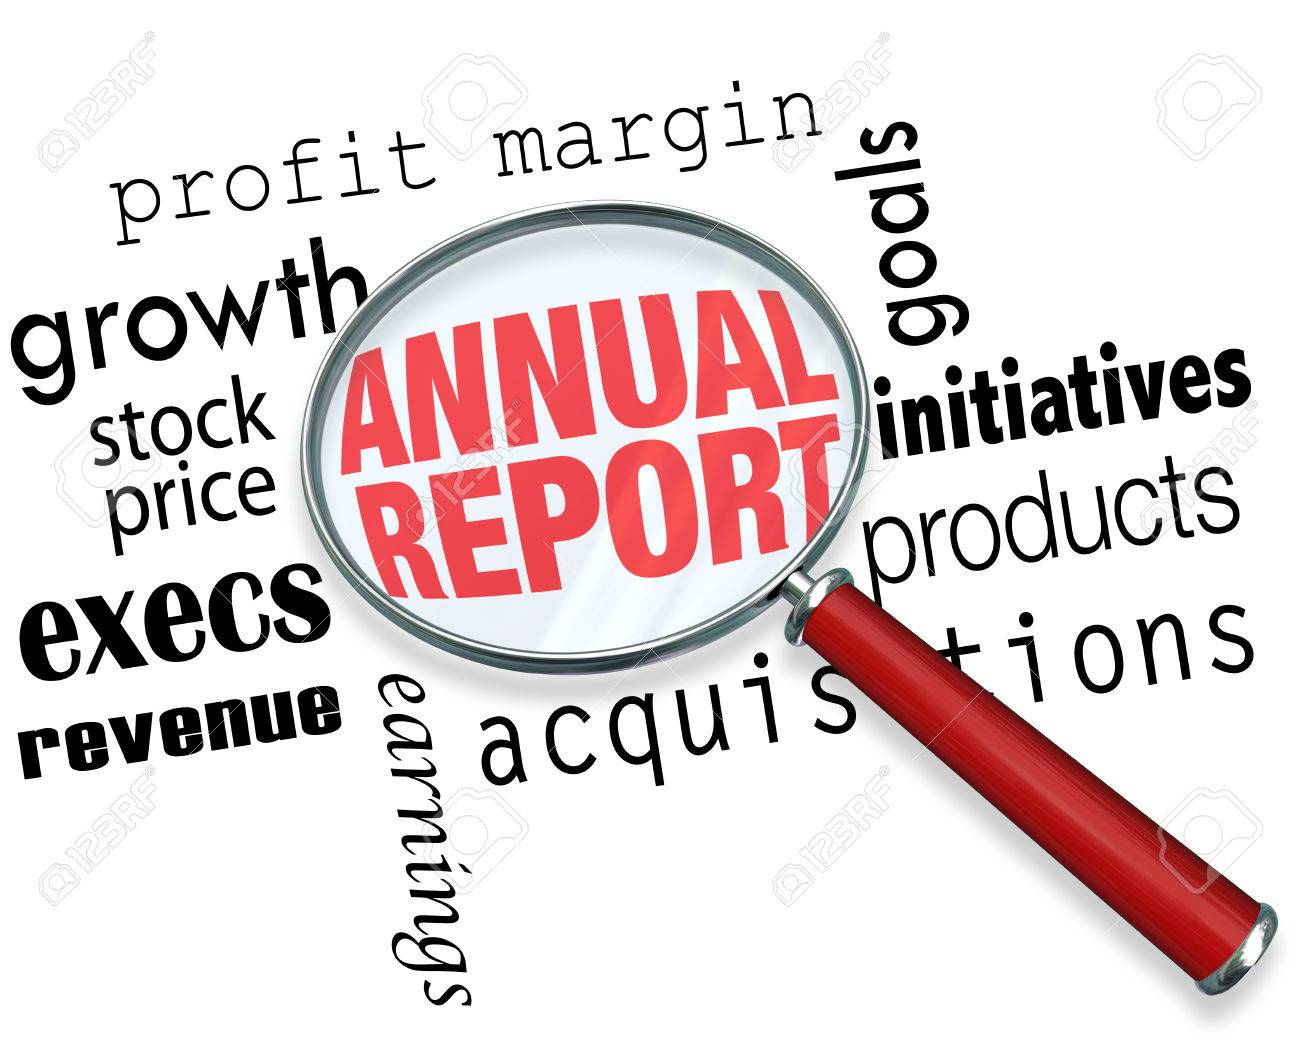 annual report words under a magnifying glass to illustrate annual report words under a magnifying glass to illustrate searching researching or looking for financial